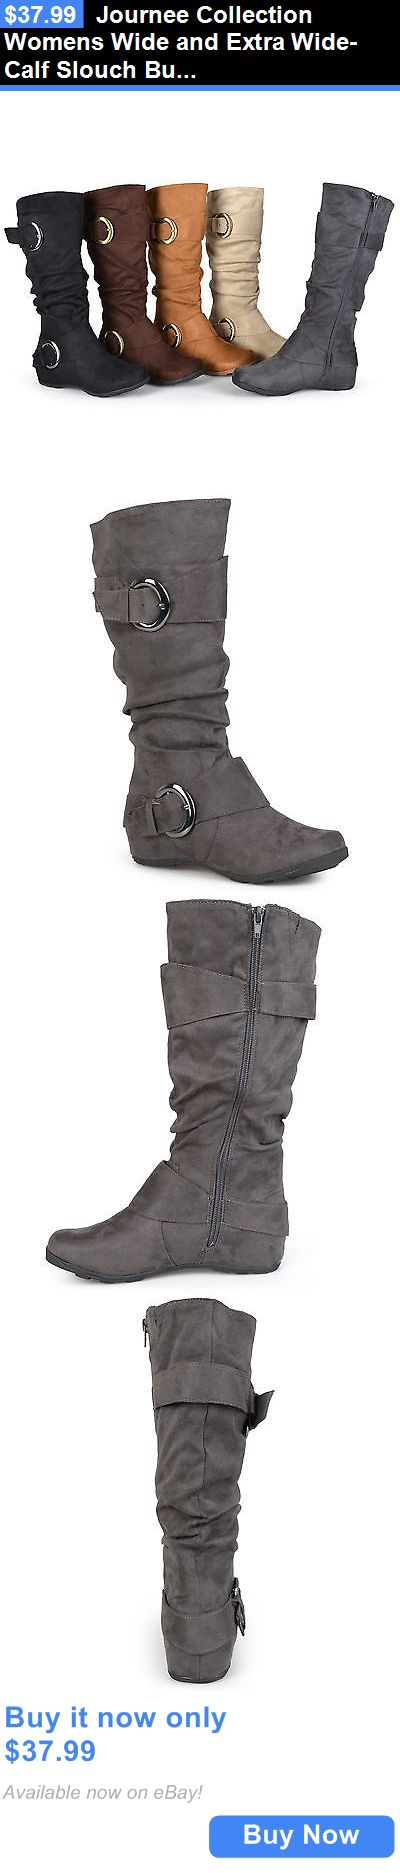 The 25+ best Wide calf boots ideas on Pinterest | Boots, Fry boots ...